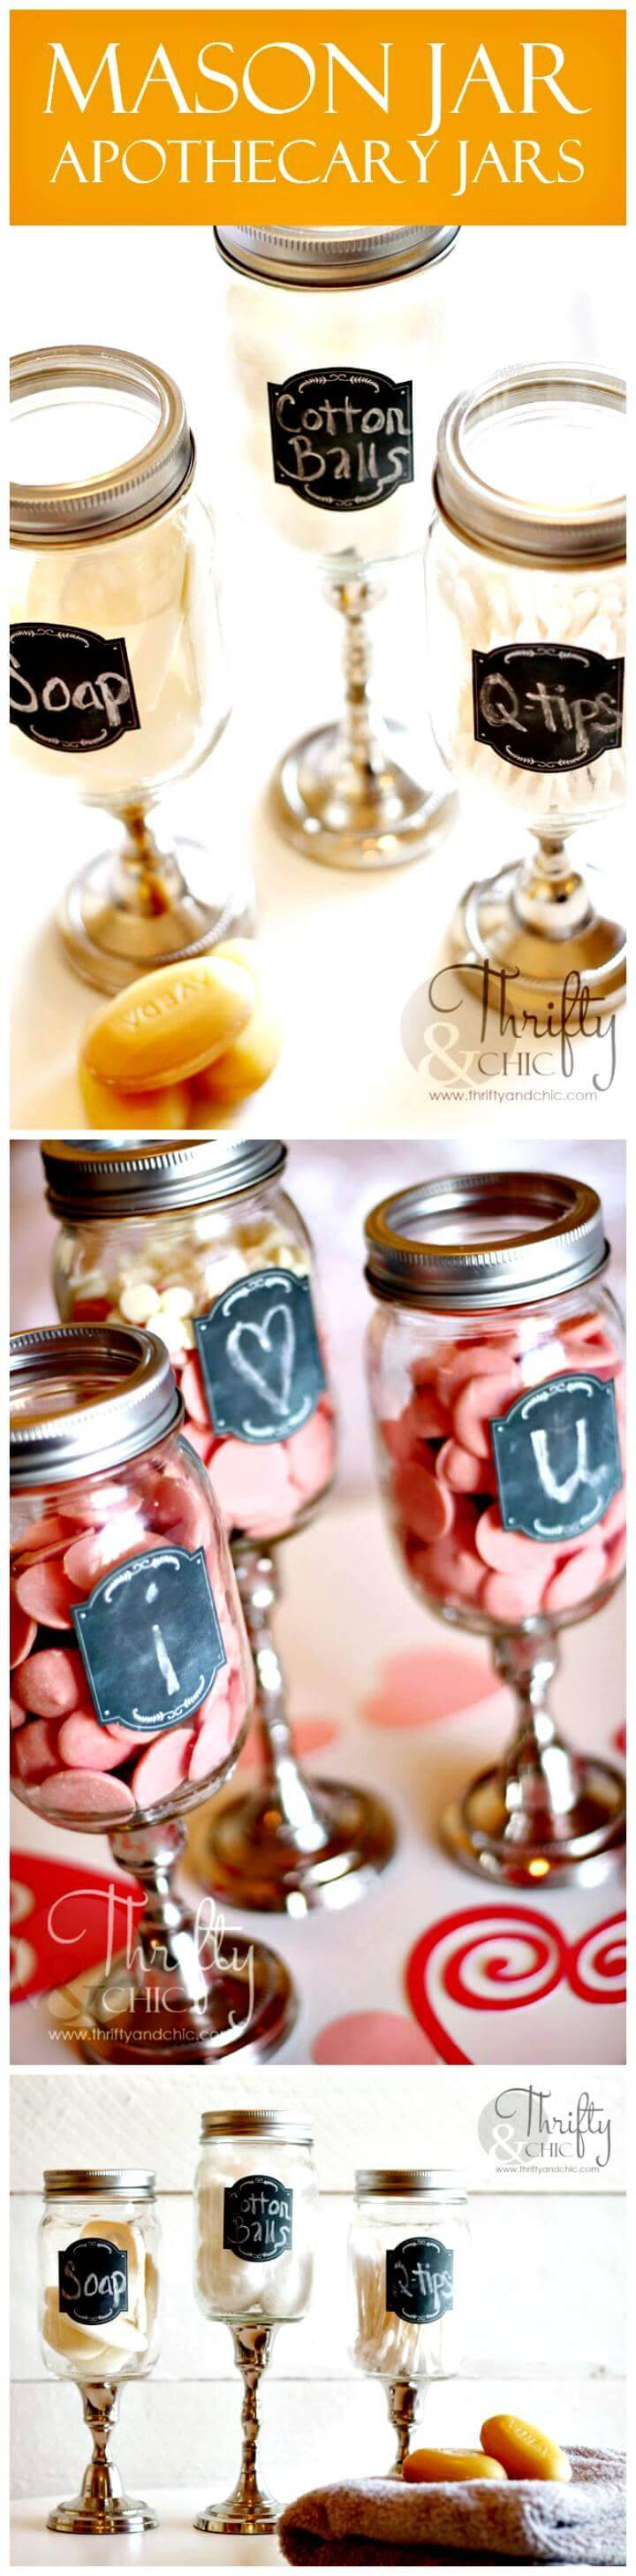 DIY Mason jar Apothecary Jars Mother's Day gift idea